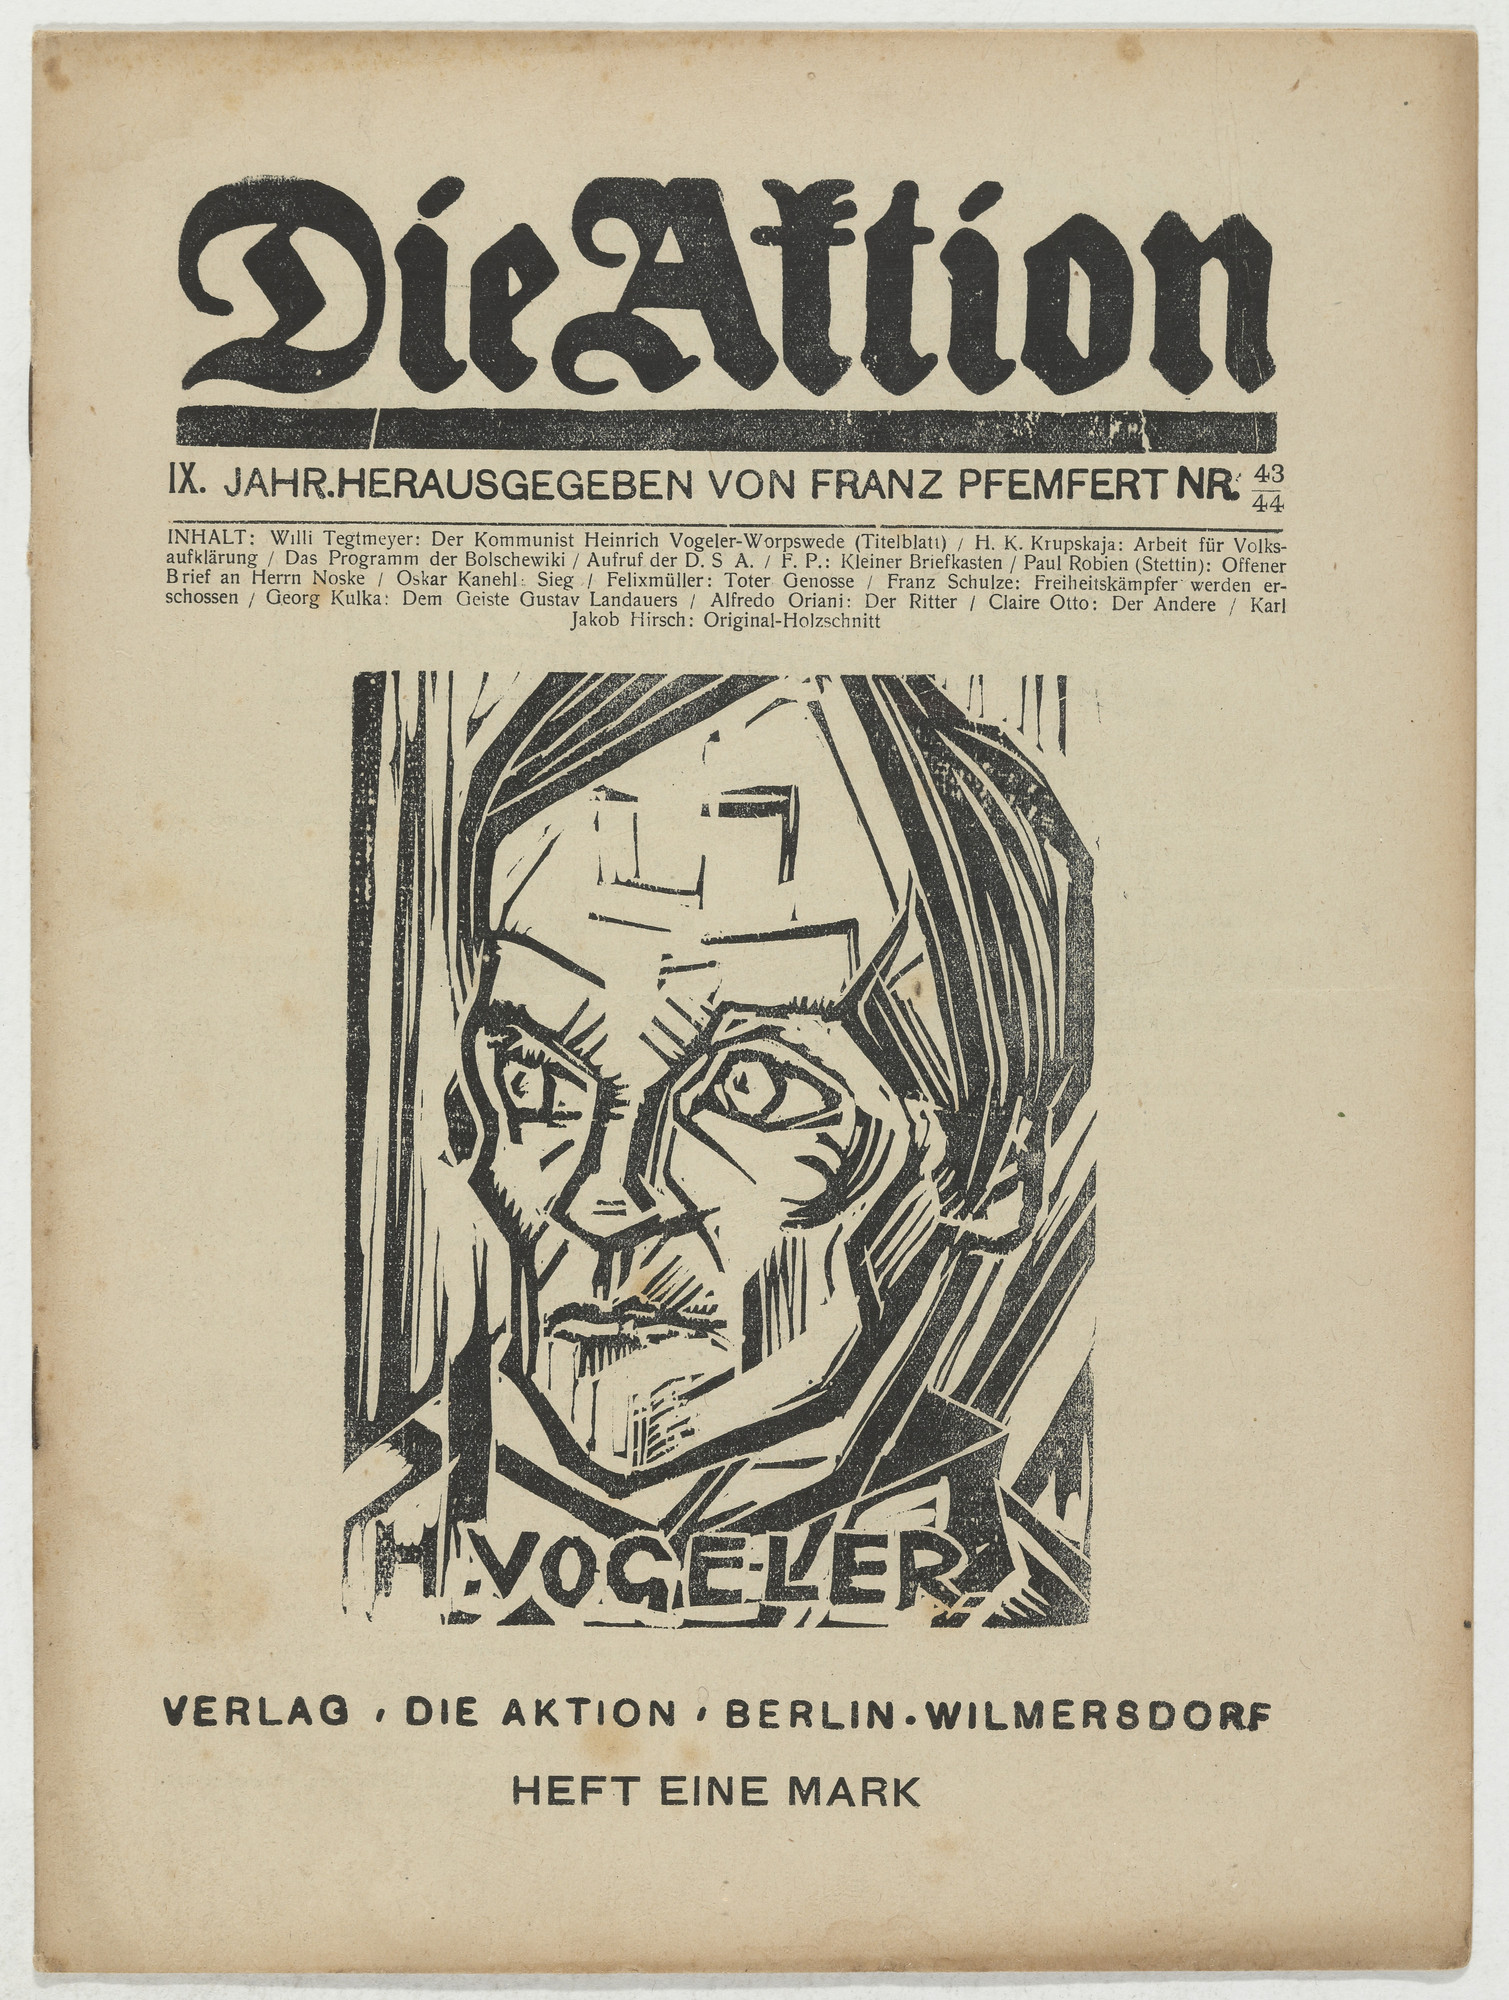 Willi Tegtmeier, Franz Schulze, Conrad Felixmüller, Karl Jacob Hirsch. Die Aktion, vol. 9, no. 43/44. November 1, 1919